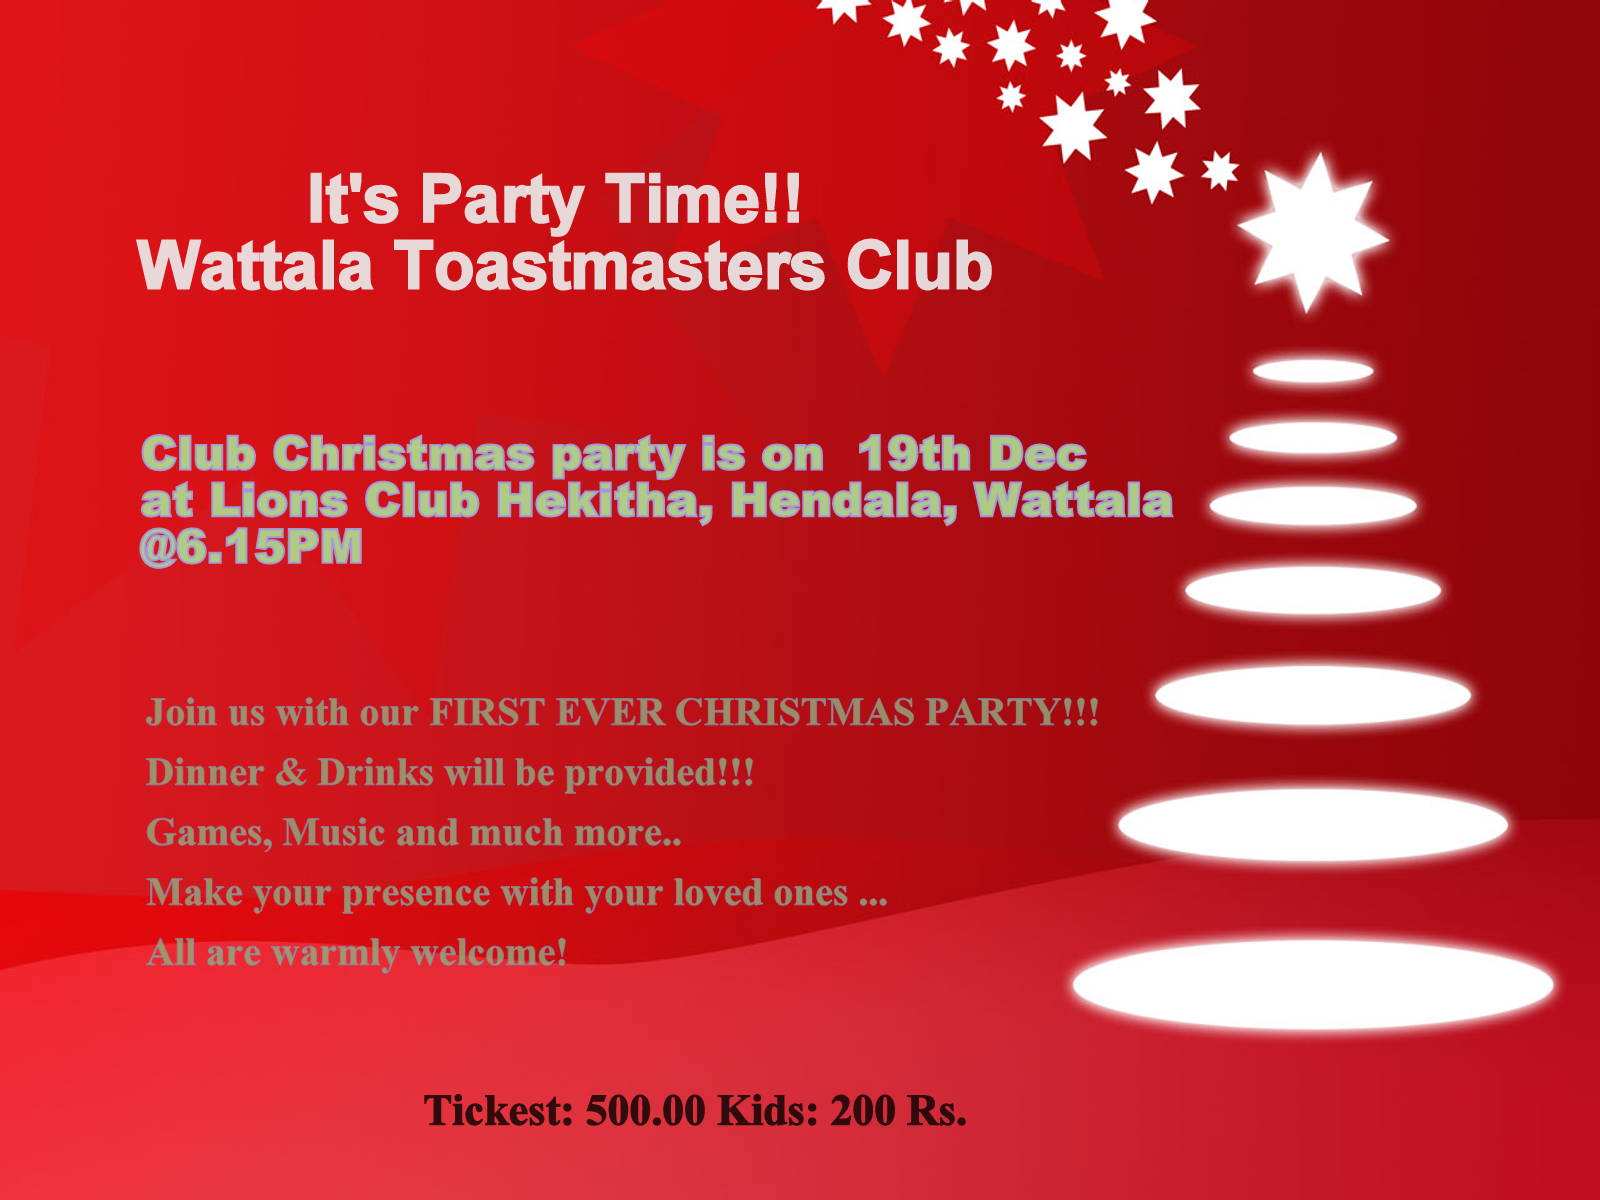 Invitation Design Ideas: Wattala Toastmasters Club: Christmas Party ...